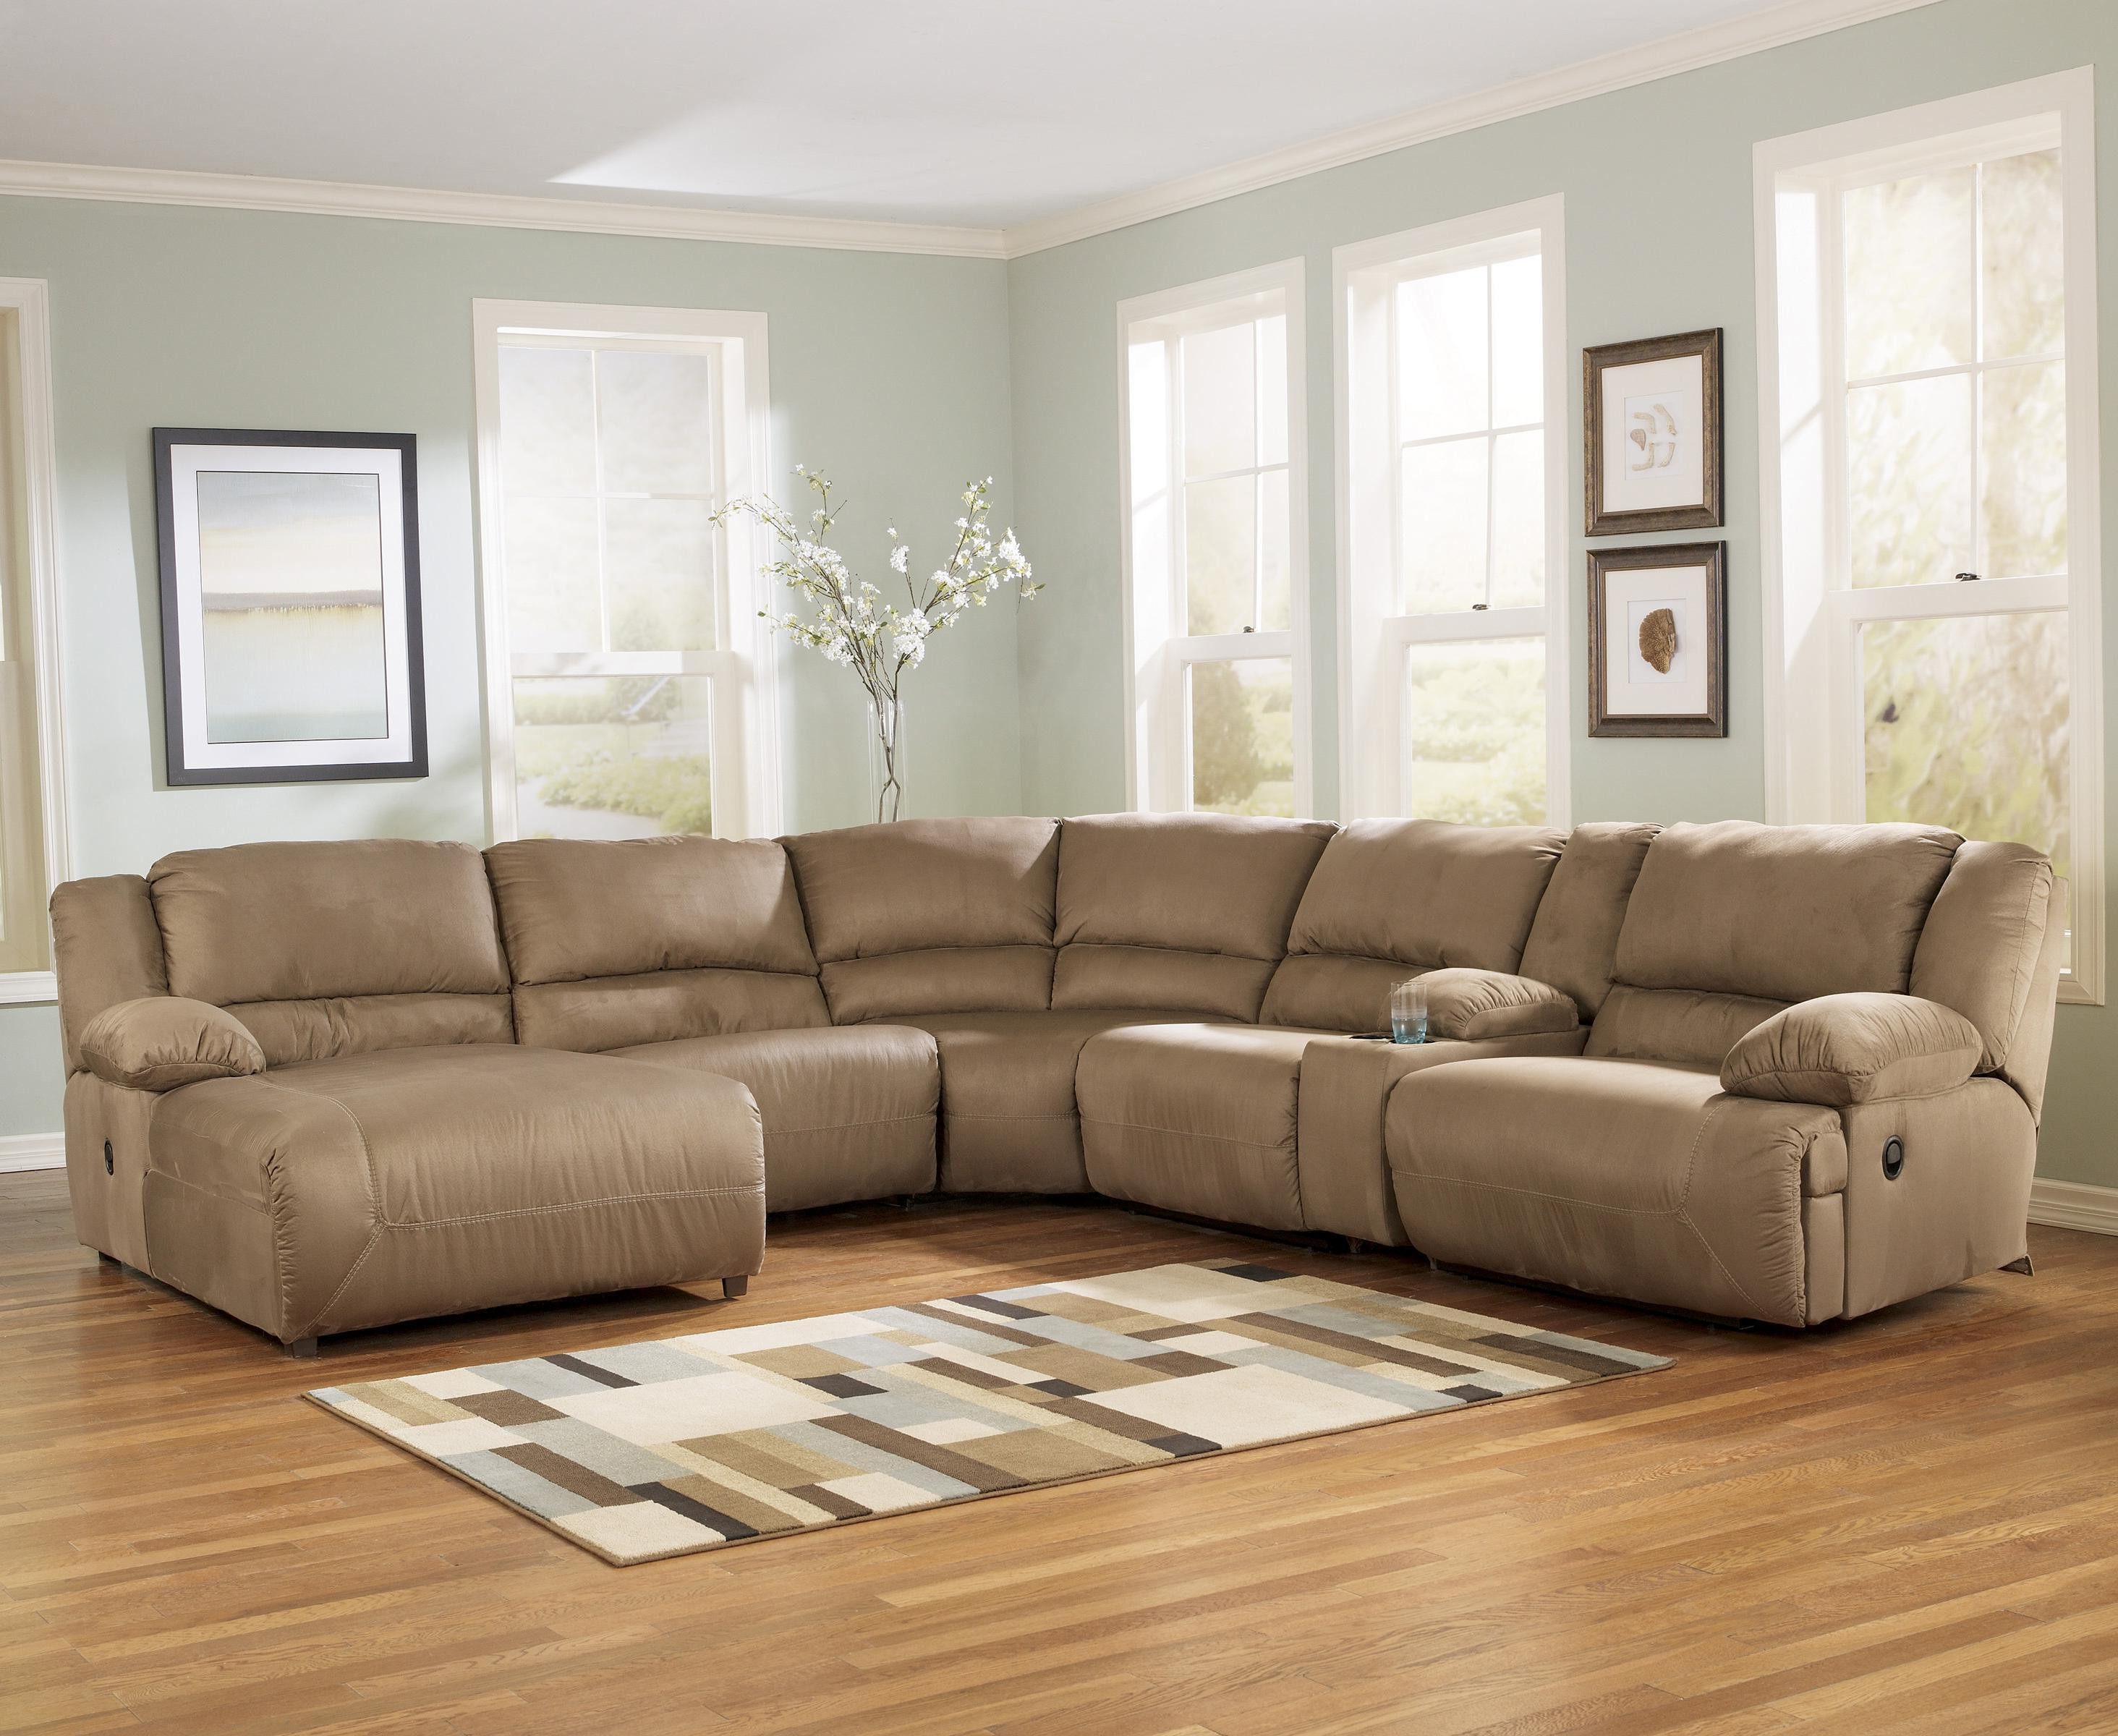 pc hardwood floors newark nj of signature design by ashley hogan mocha 6 piece motion sectional regarding signature design by ashley hogan mocha 6 piece motion sectional with left chaise and console ahfa reclining sectional sofa dealer locator